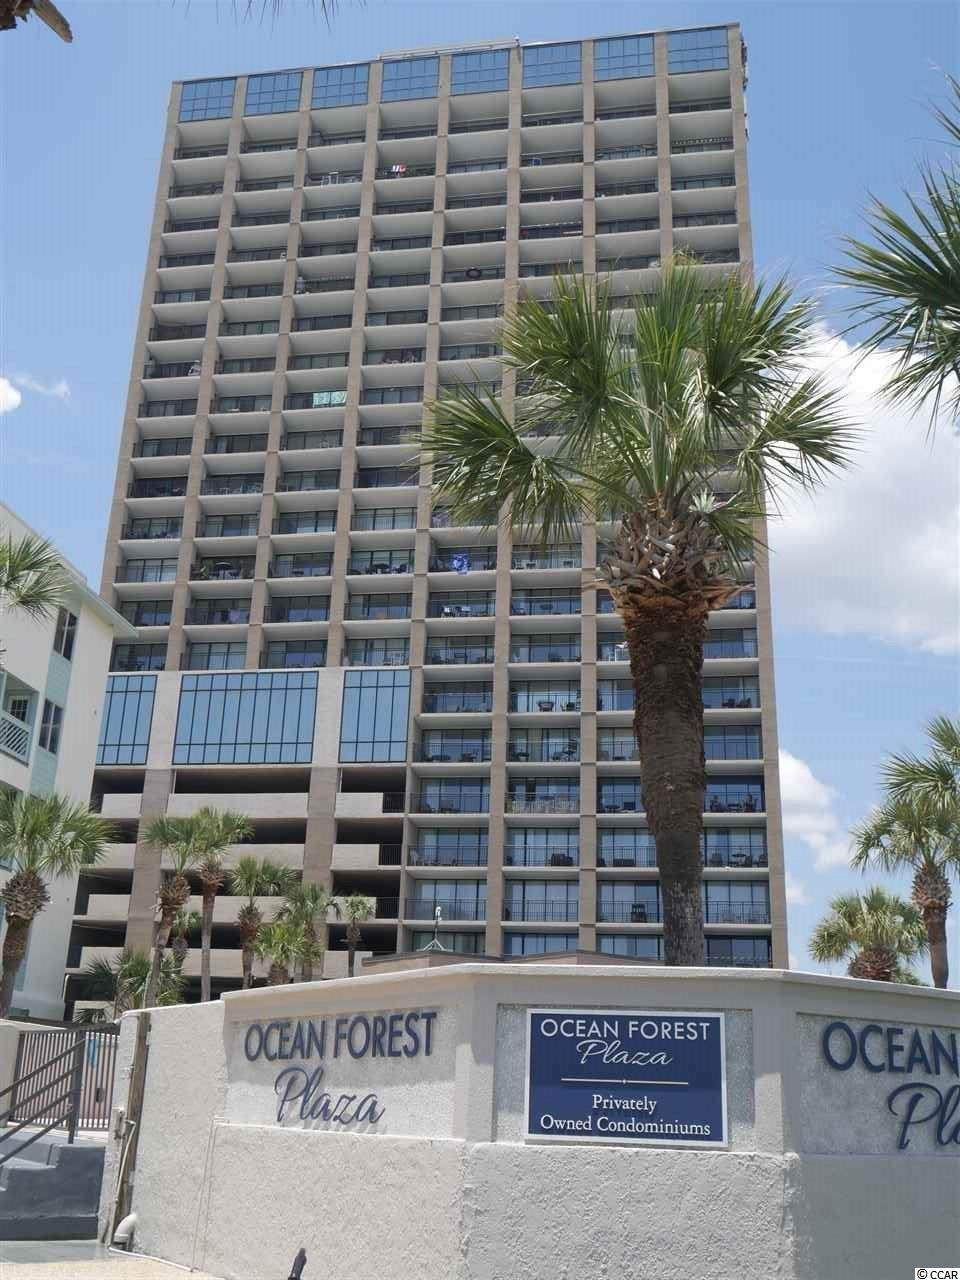 Enjoy the view of the Ocean & Beach from your private balcony on the 17th Floor. This upgraded, Ocean view condo features a true 1 Bedroom floor plan  with full bath, kitchen/dining area and living room with sliders to a private balcony. Upgrades include:  Renovated Kitchen with Whirlpool Refrigerator/Freezer w/ ice maker (1.5yr old) and Custom full size kitchen pantry, Full size Samsung washer and dryer set (2yr old) in custom lockable closet, Bathroom refurbished in 2020-21, Flooring replaced 2018, Bonus closet in BR with custom book shelves and window seat to view the southern side of the beach. This condo is ready to move in. Located in one of Myrtle Beach's most prestigious destinations - This building features wireless Internet access, owner's fitness, owner's laundry, owner's lounge, heated indoor pool, hot tub and outdoor pool. Pet friendly for owners. Interior electric included in home owners assoc fees. Walk across the street to the oceanfront walking trail and playground. Close to Shopping, Restaurants and attractions. Great as a 2nd home or investment property. Square footage is approximate and not guaranteed. Buyer is responsible for verification